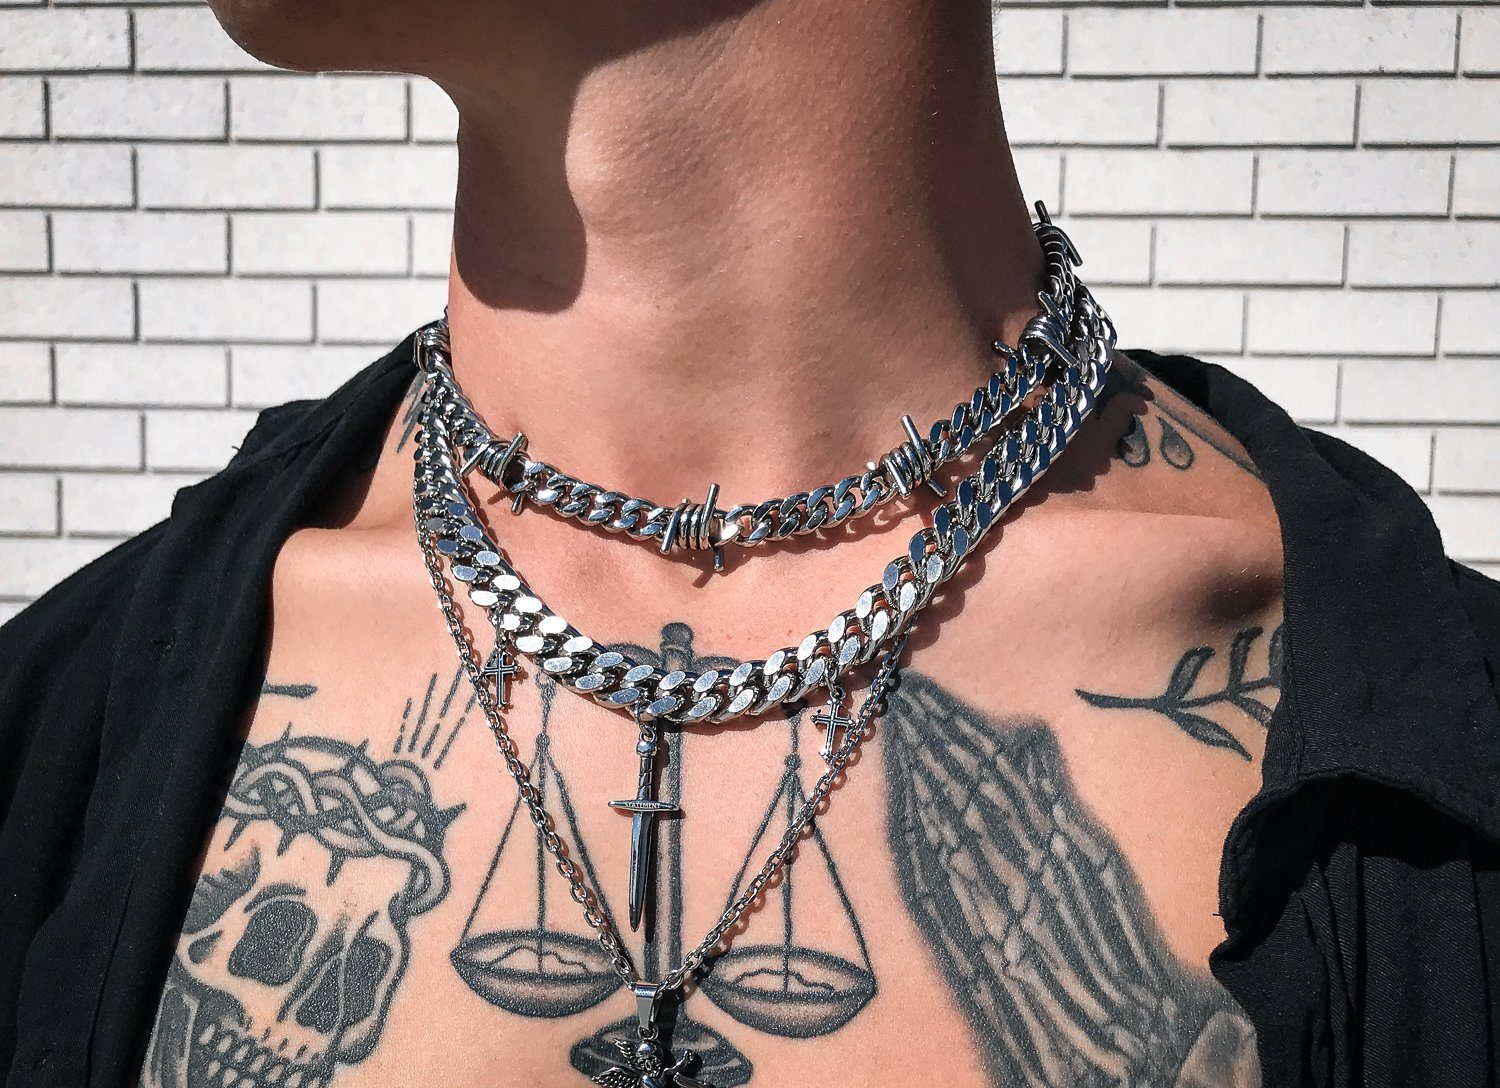 The Anatomy of The Barbed Wire Cuban Link Necklace